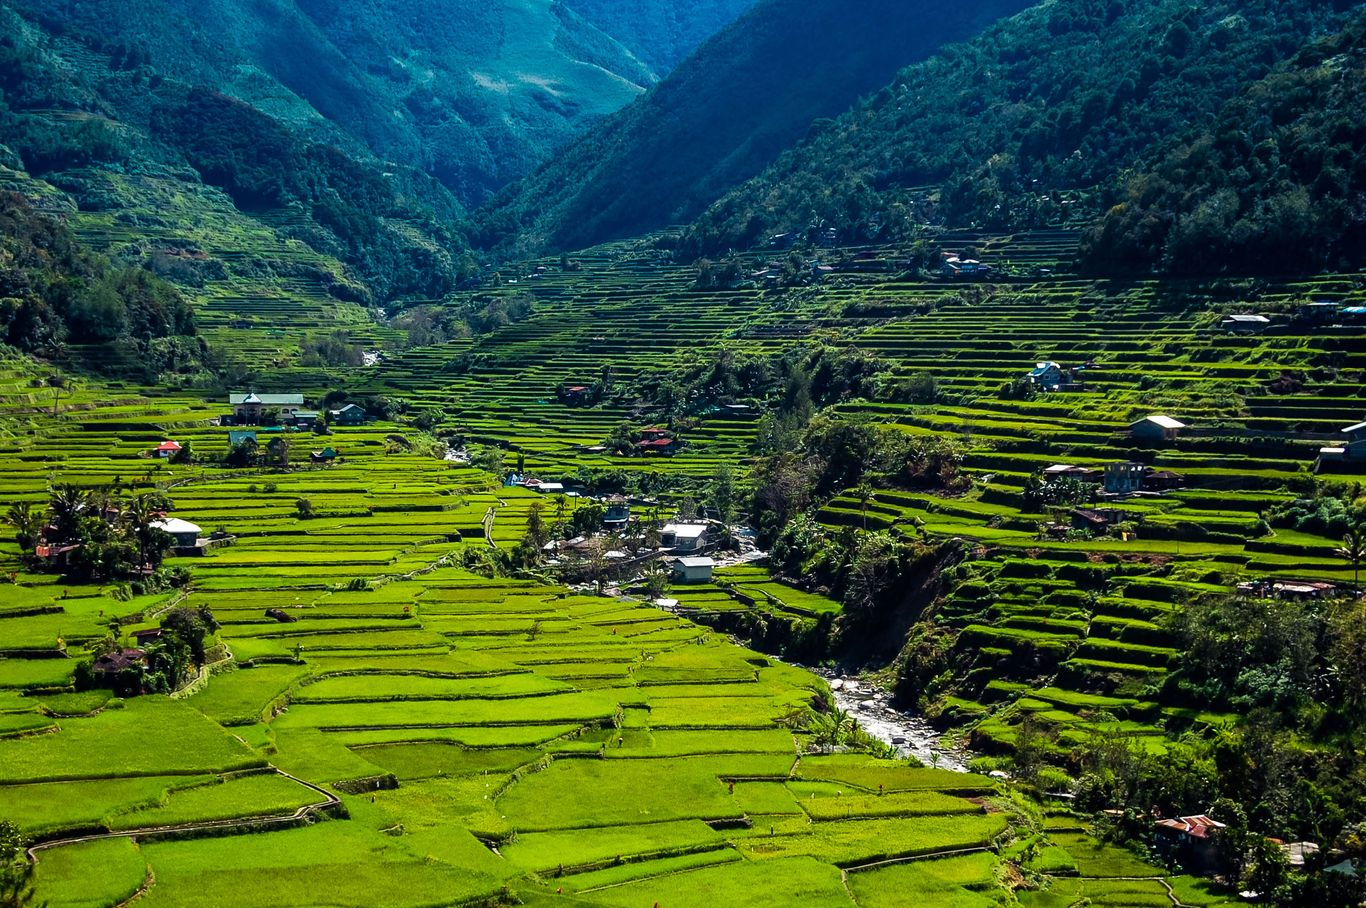 Small villages lie within wide rice terraces carved at the feet of forested mountains, through which a river flows